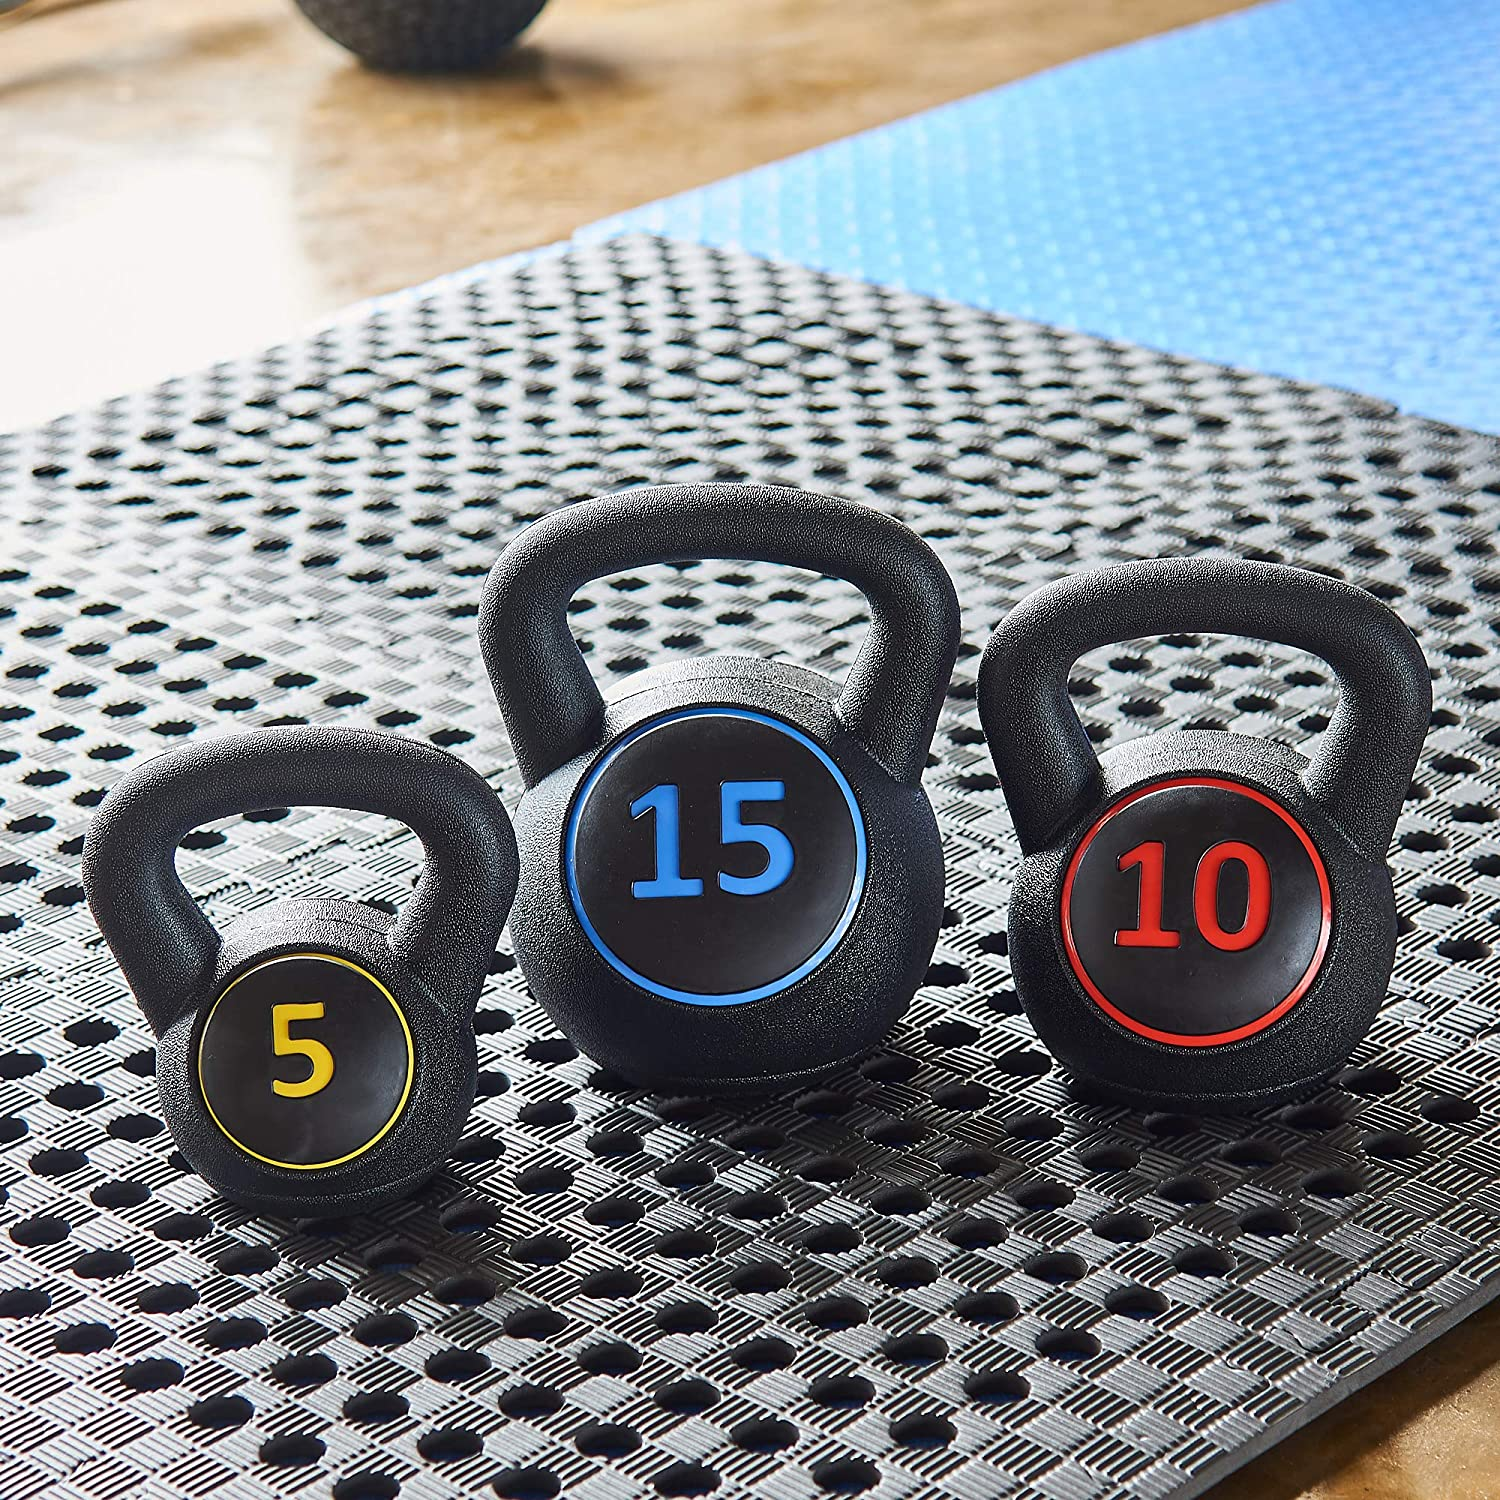 Amazon.com : BalanceFrom Wide Grip 3-Piece Kettlebell Exercise Fitness Weight Set, Include 5 lbs, 10 lbs, 15 lbs, Black : Sports & Outdoors